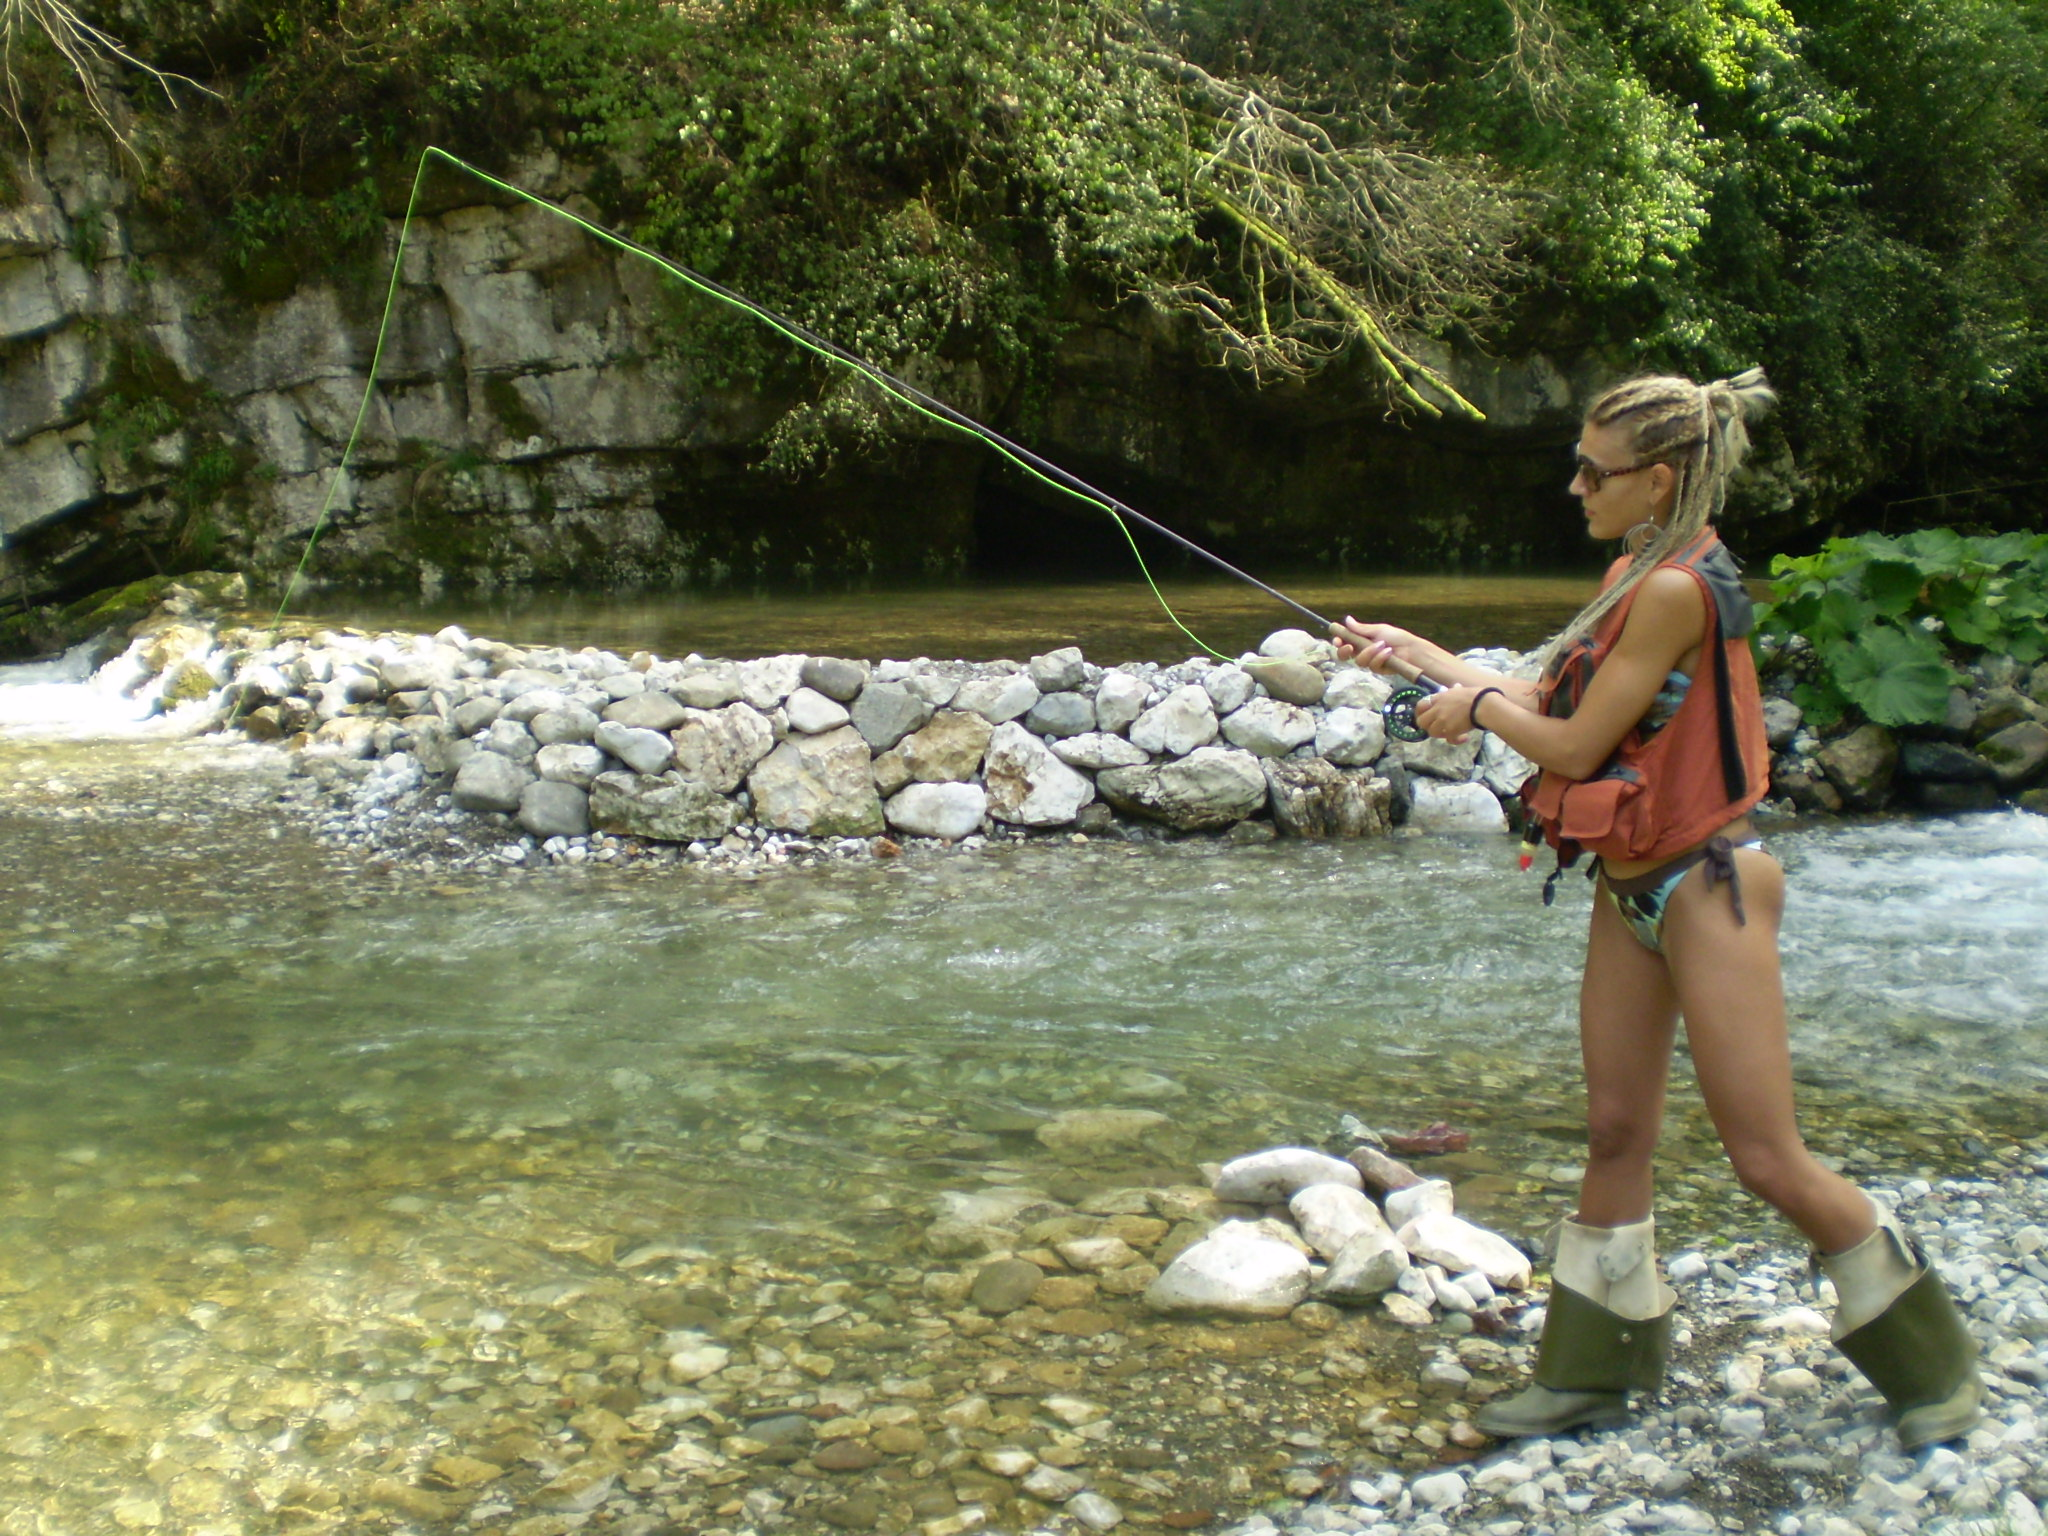 Mary is new to flyfishing